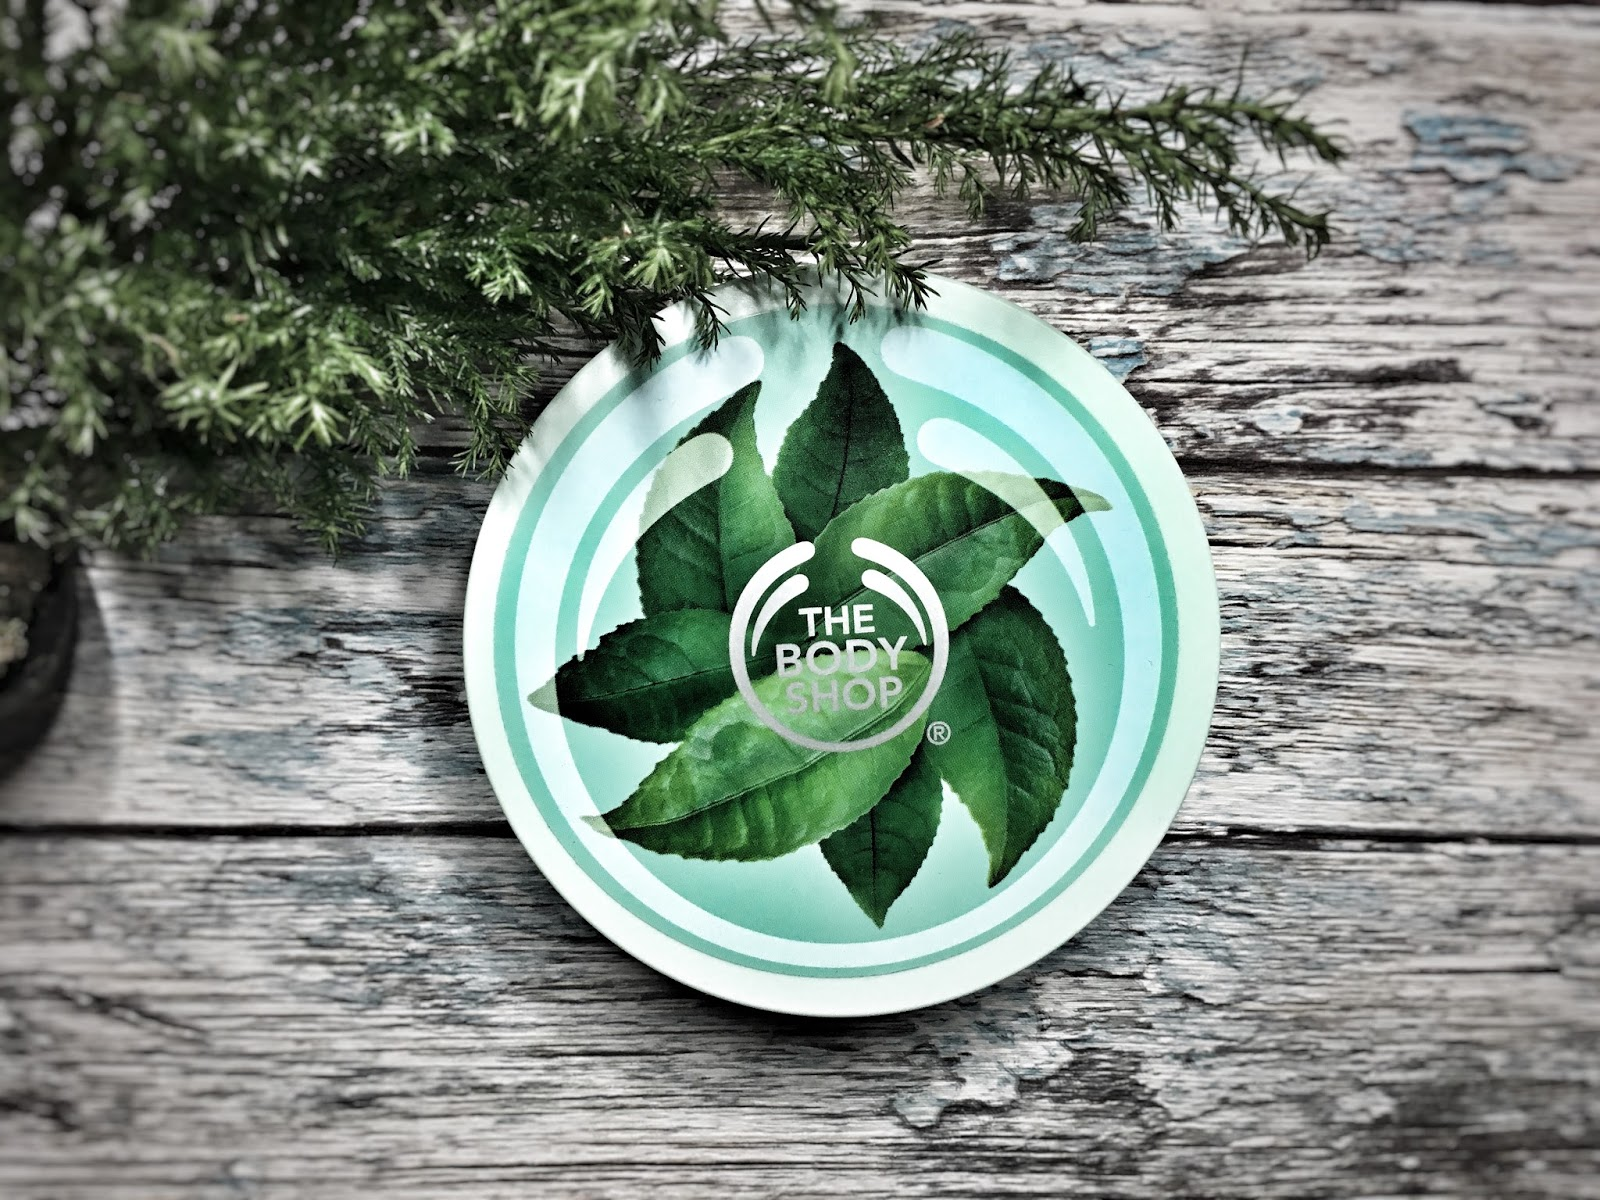 Trochę lata zimą - Fuji Green Tea, The Body Shop